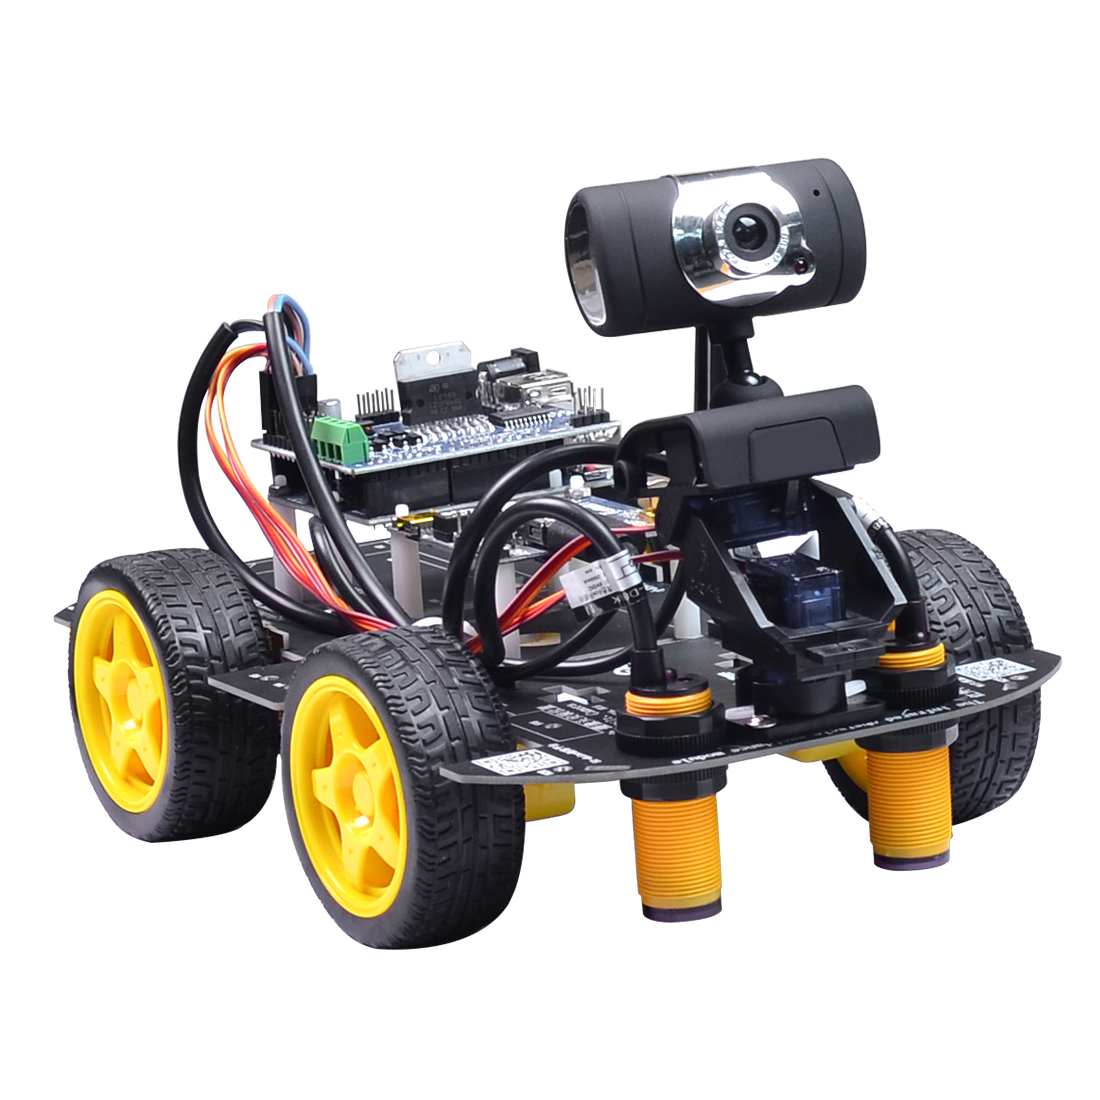 DIY Programmable Robot Wifi Steam Educational Car With Graphic Programming XR BLOCK Linux For Raspberry Pi 4(2G) - US Plug